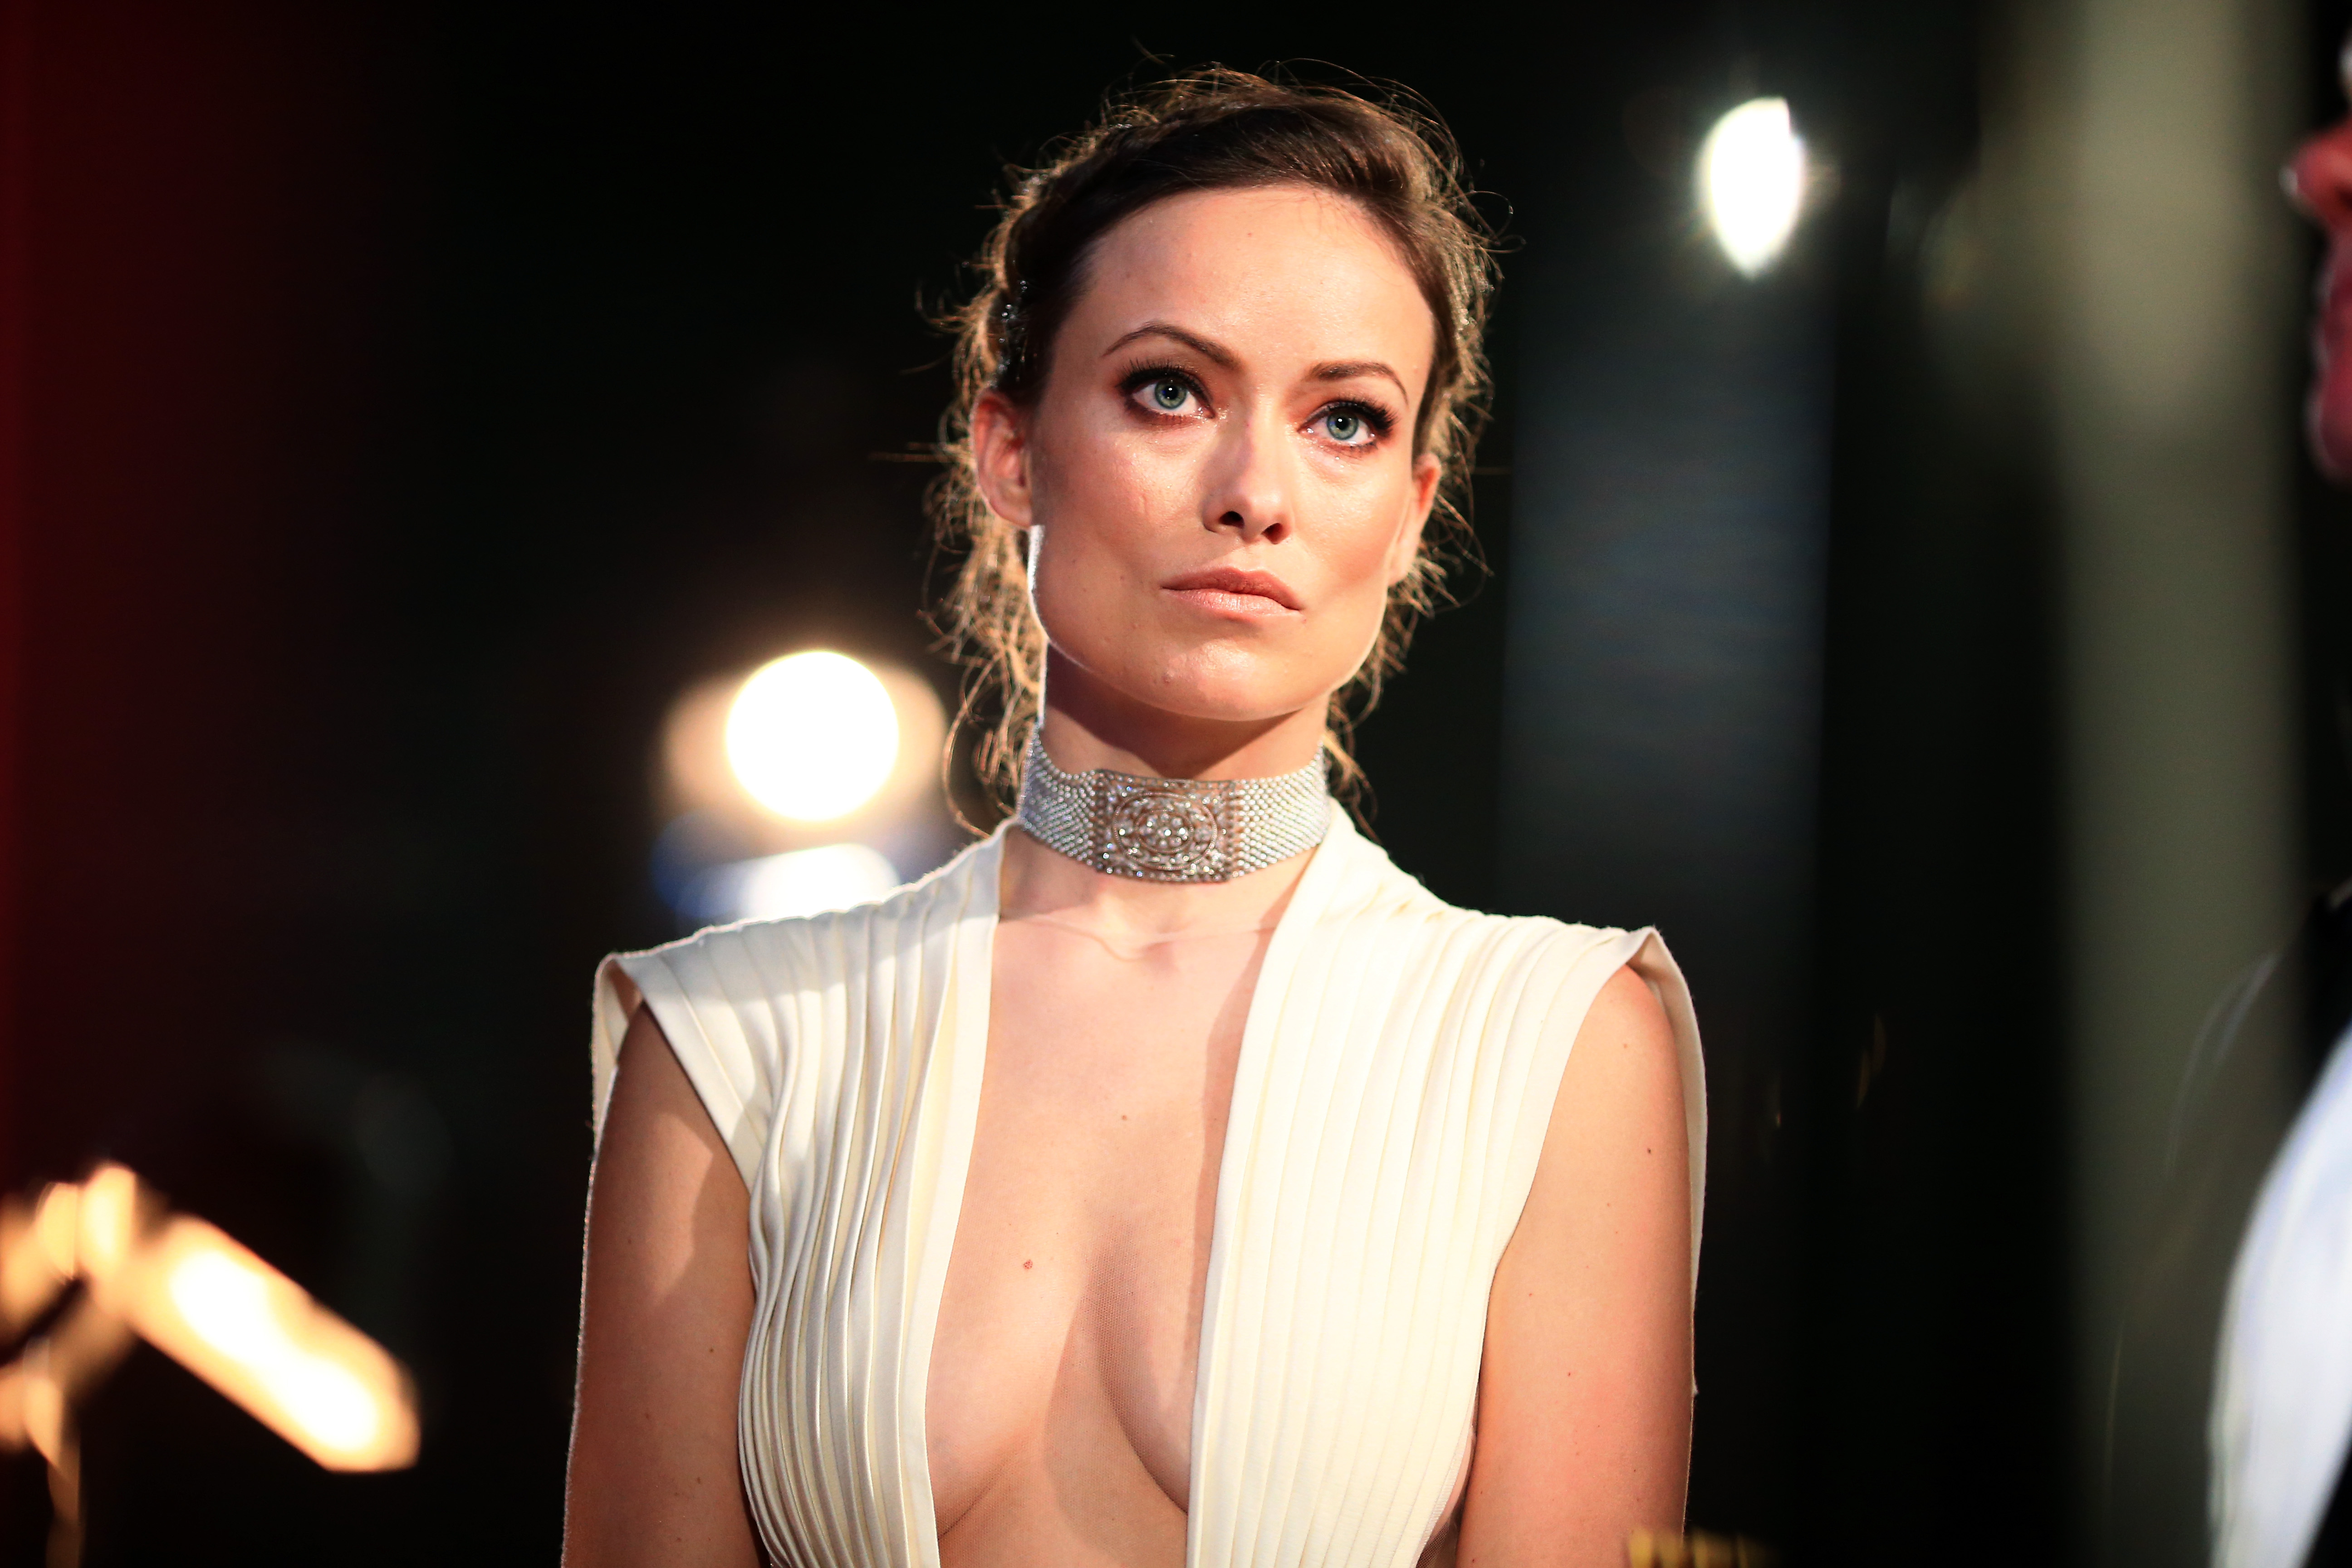 Olivia Wilde attends the 88th Annual Academy Awards at Dolby Theatre on February 28, 2016 in Hollywood, California.